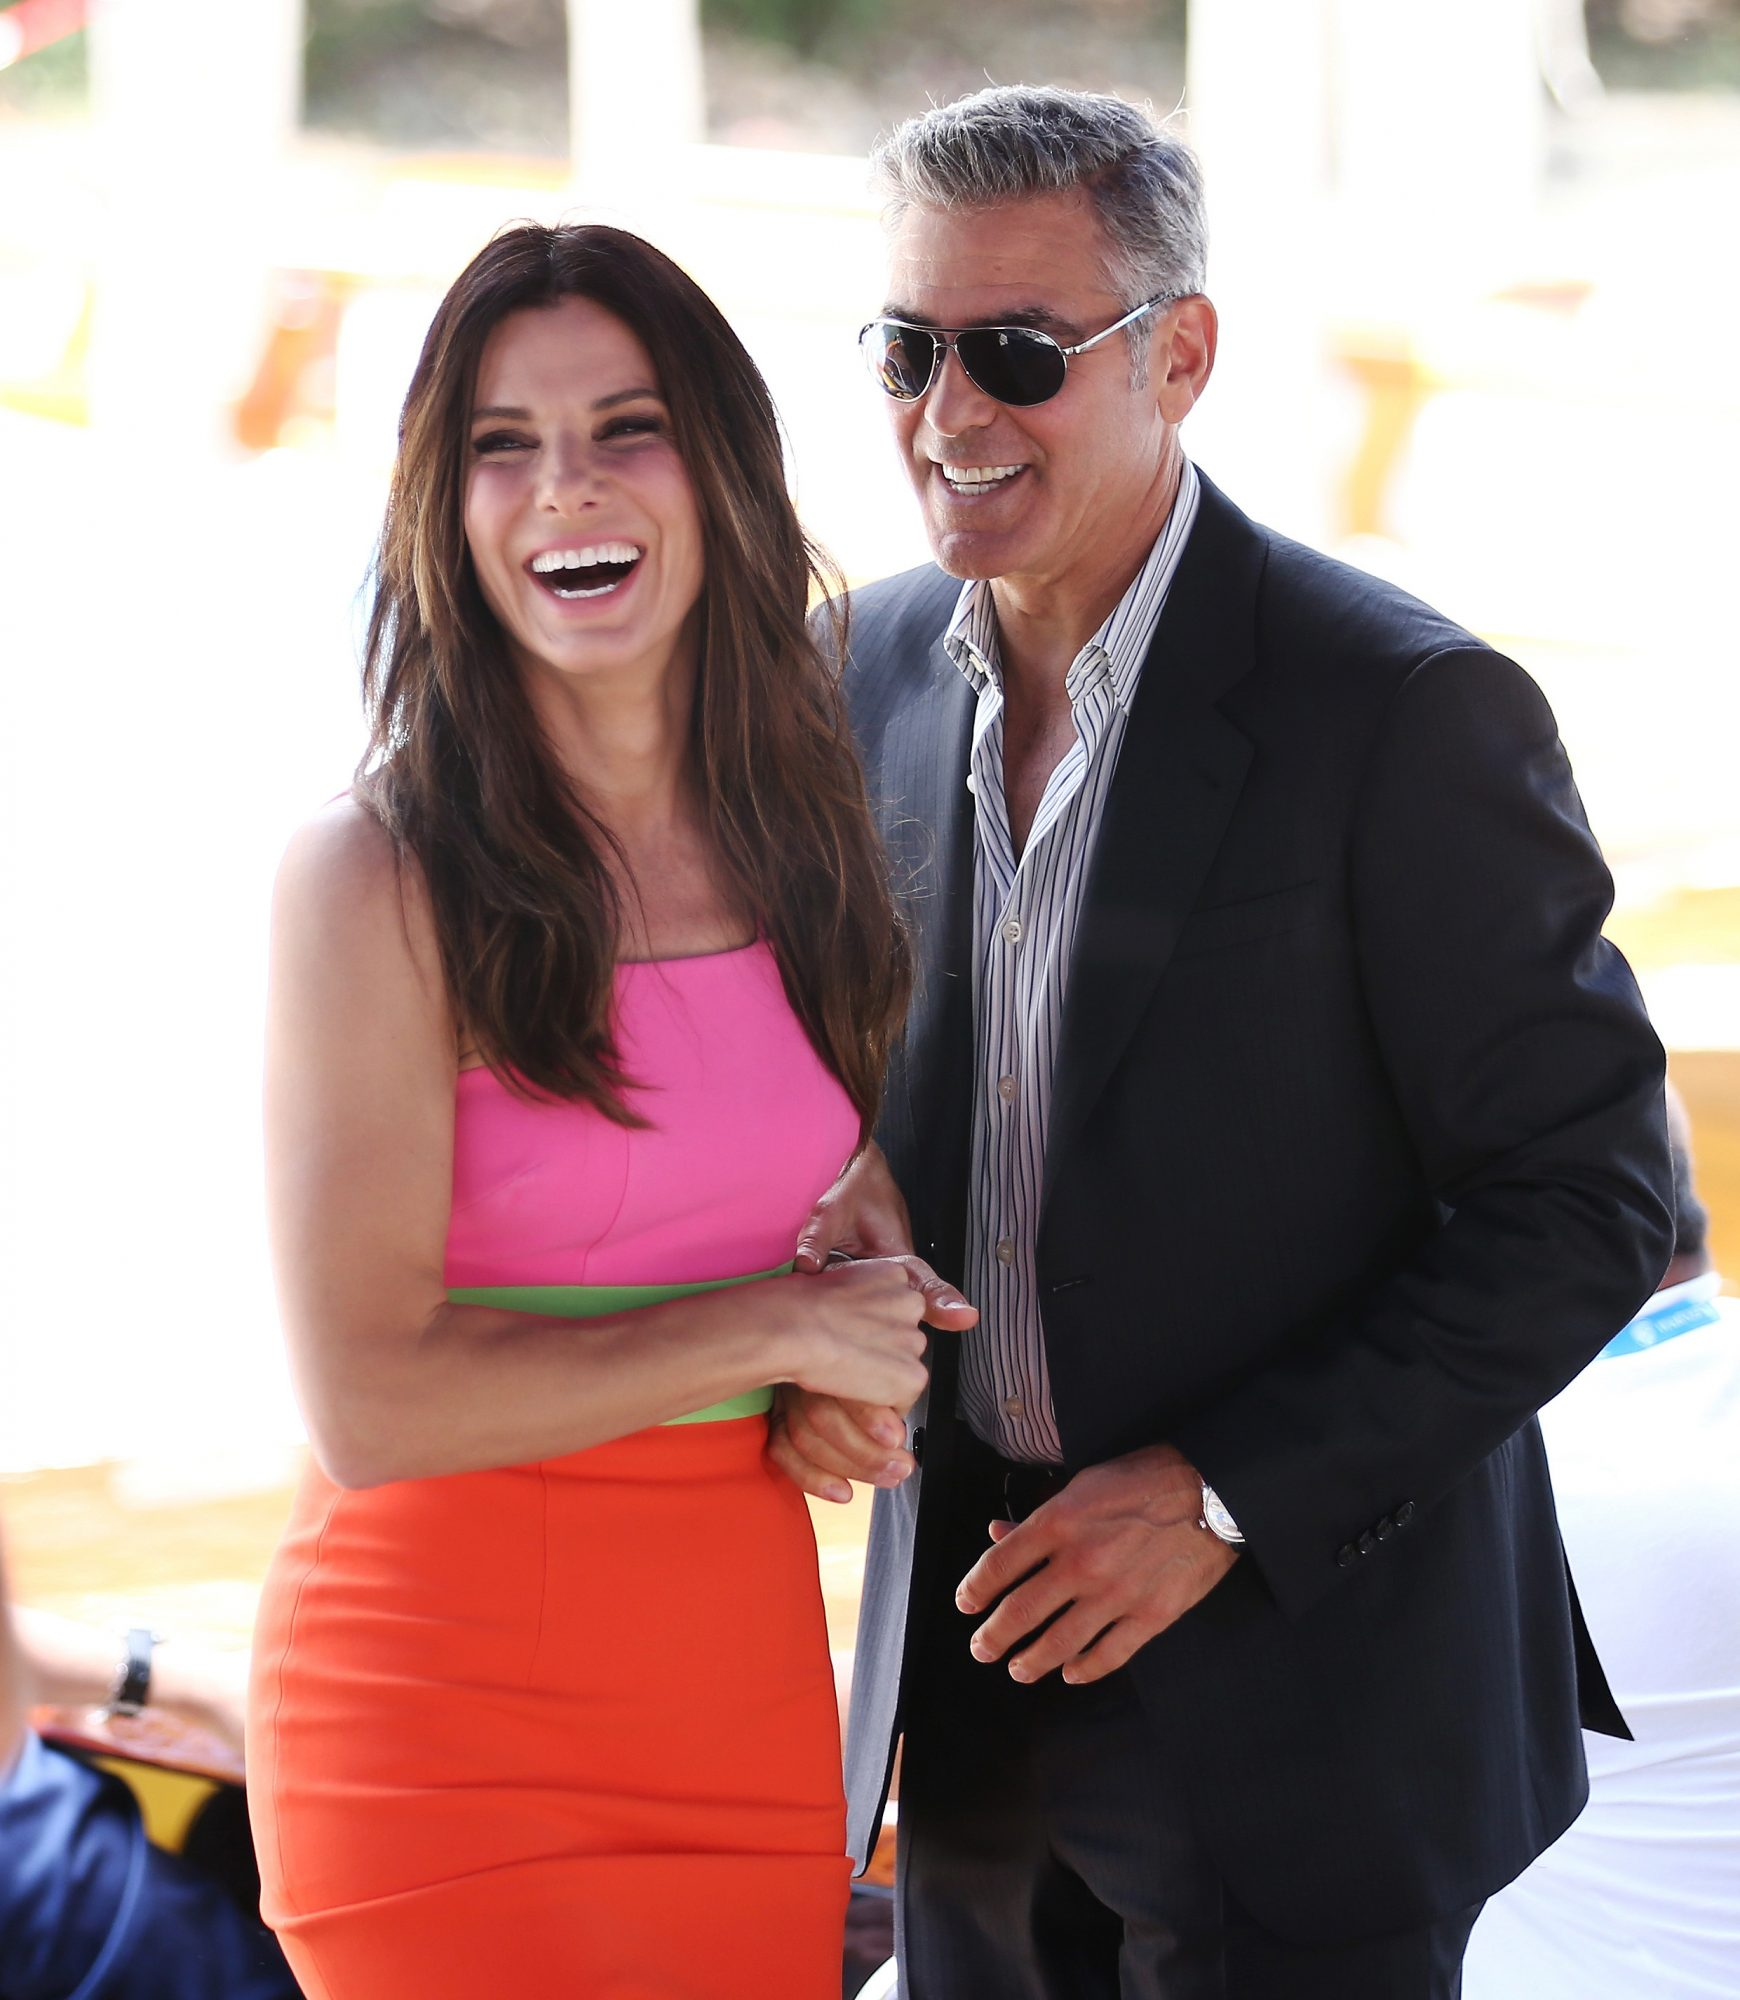 Sandra Bullock and George Clooney - 70th Venice International Film Festival at the Palazzo del Casino on August 28, 2013